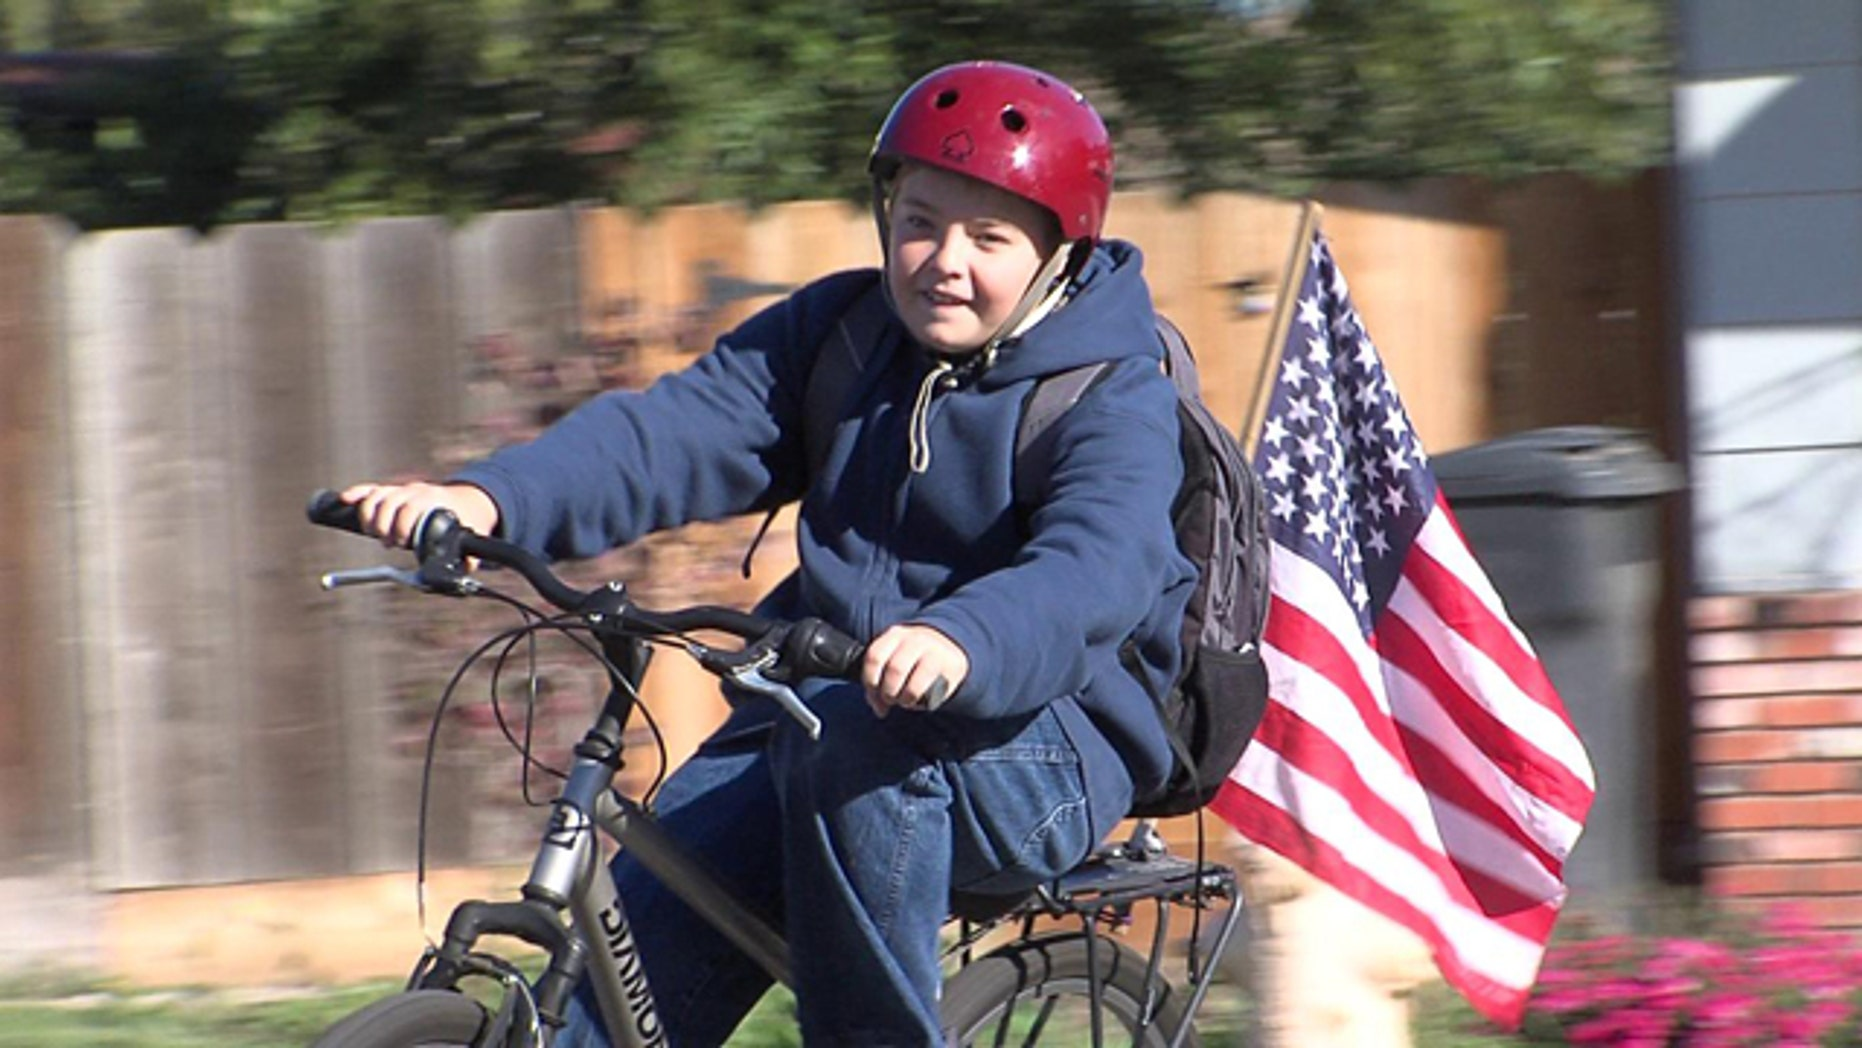 Cody Alicea, 13, rides his bicycle with his American Flag attached.